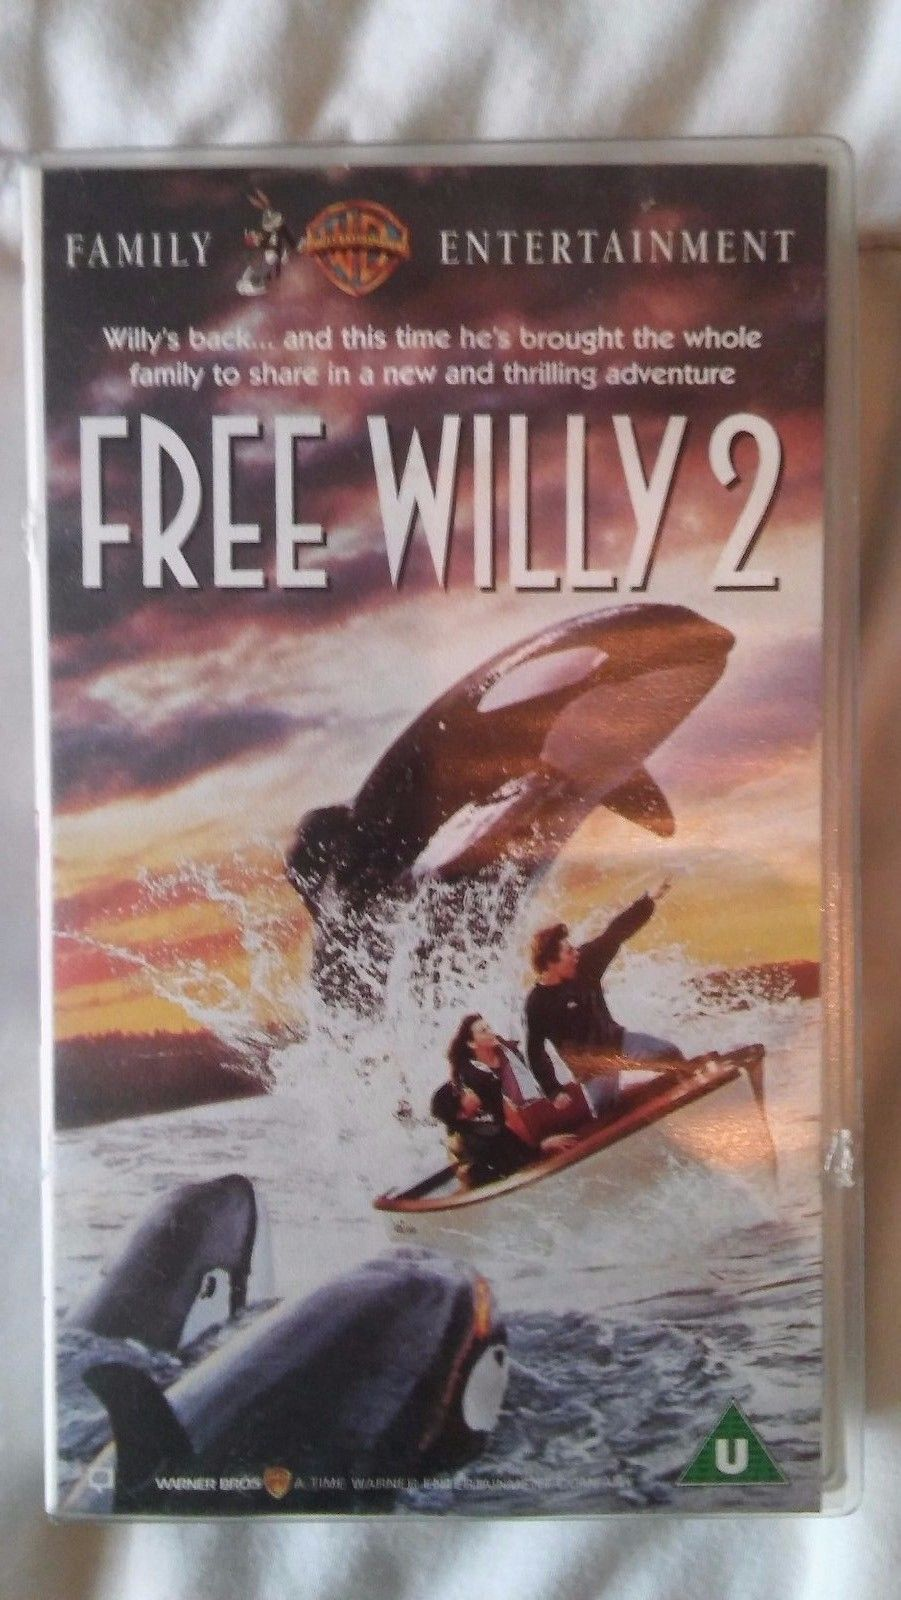 Willy Wonka And The Chocolate Factory Vhs Free Willy 2: The Adve...